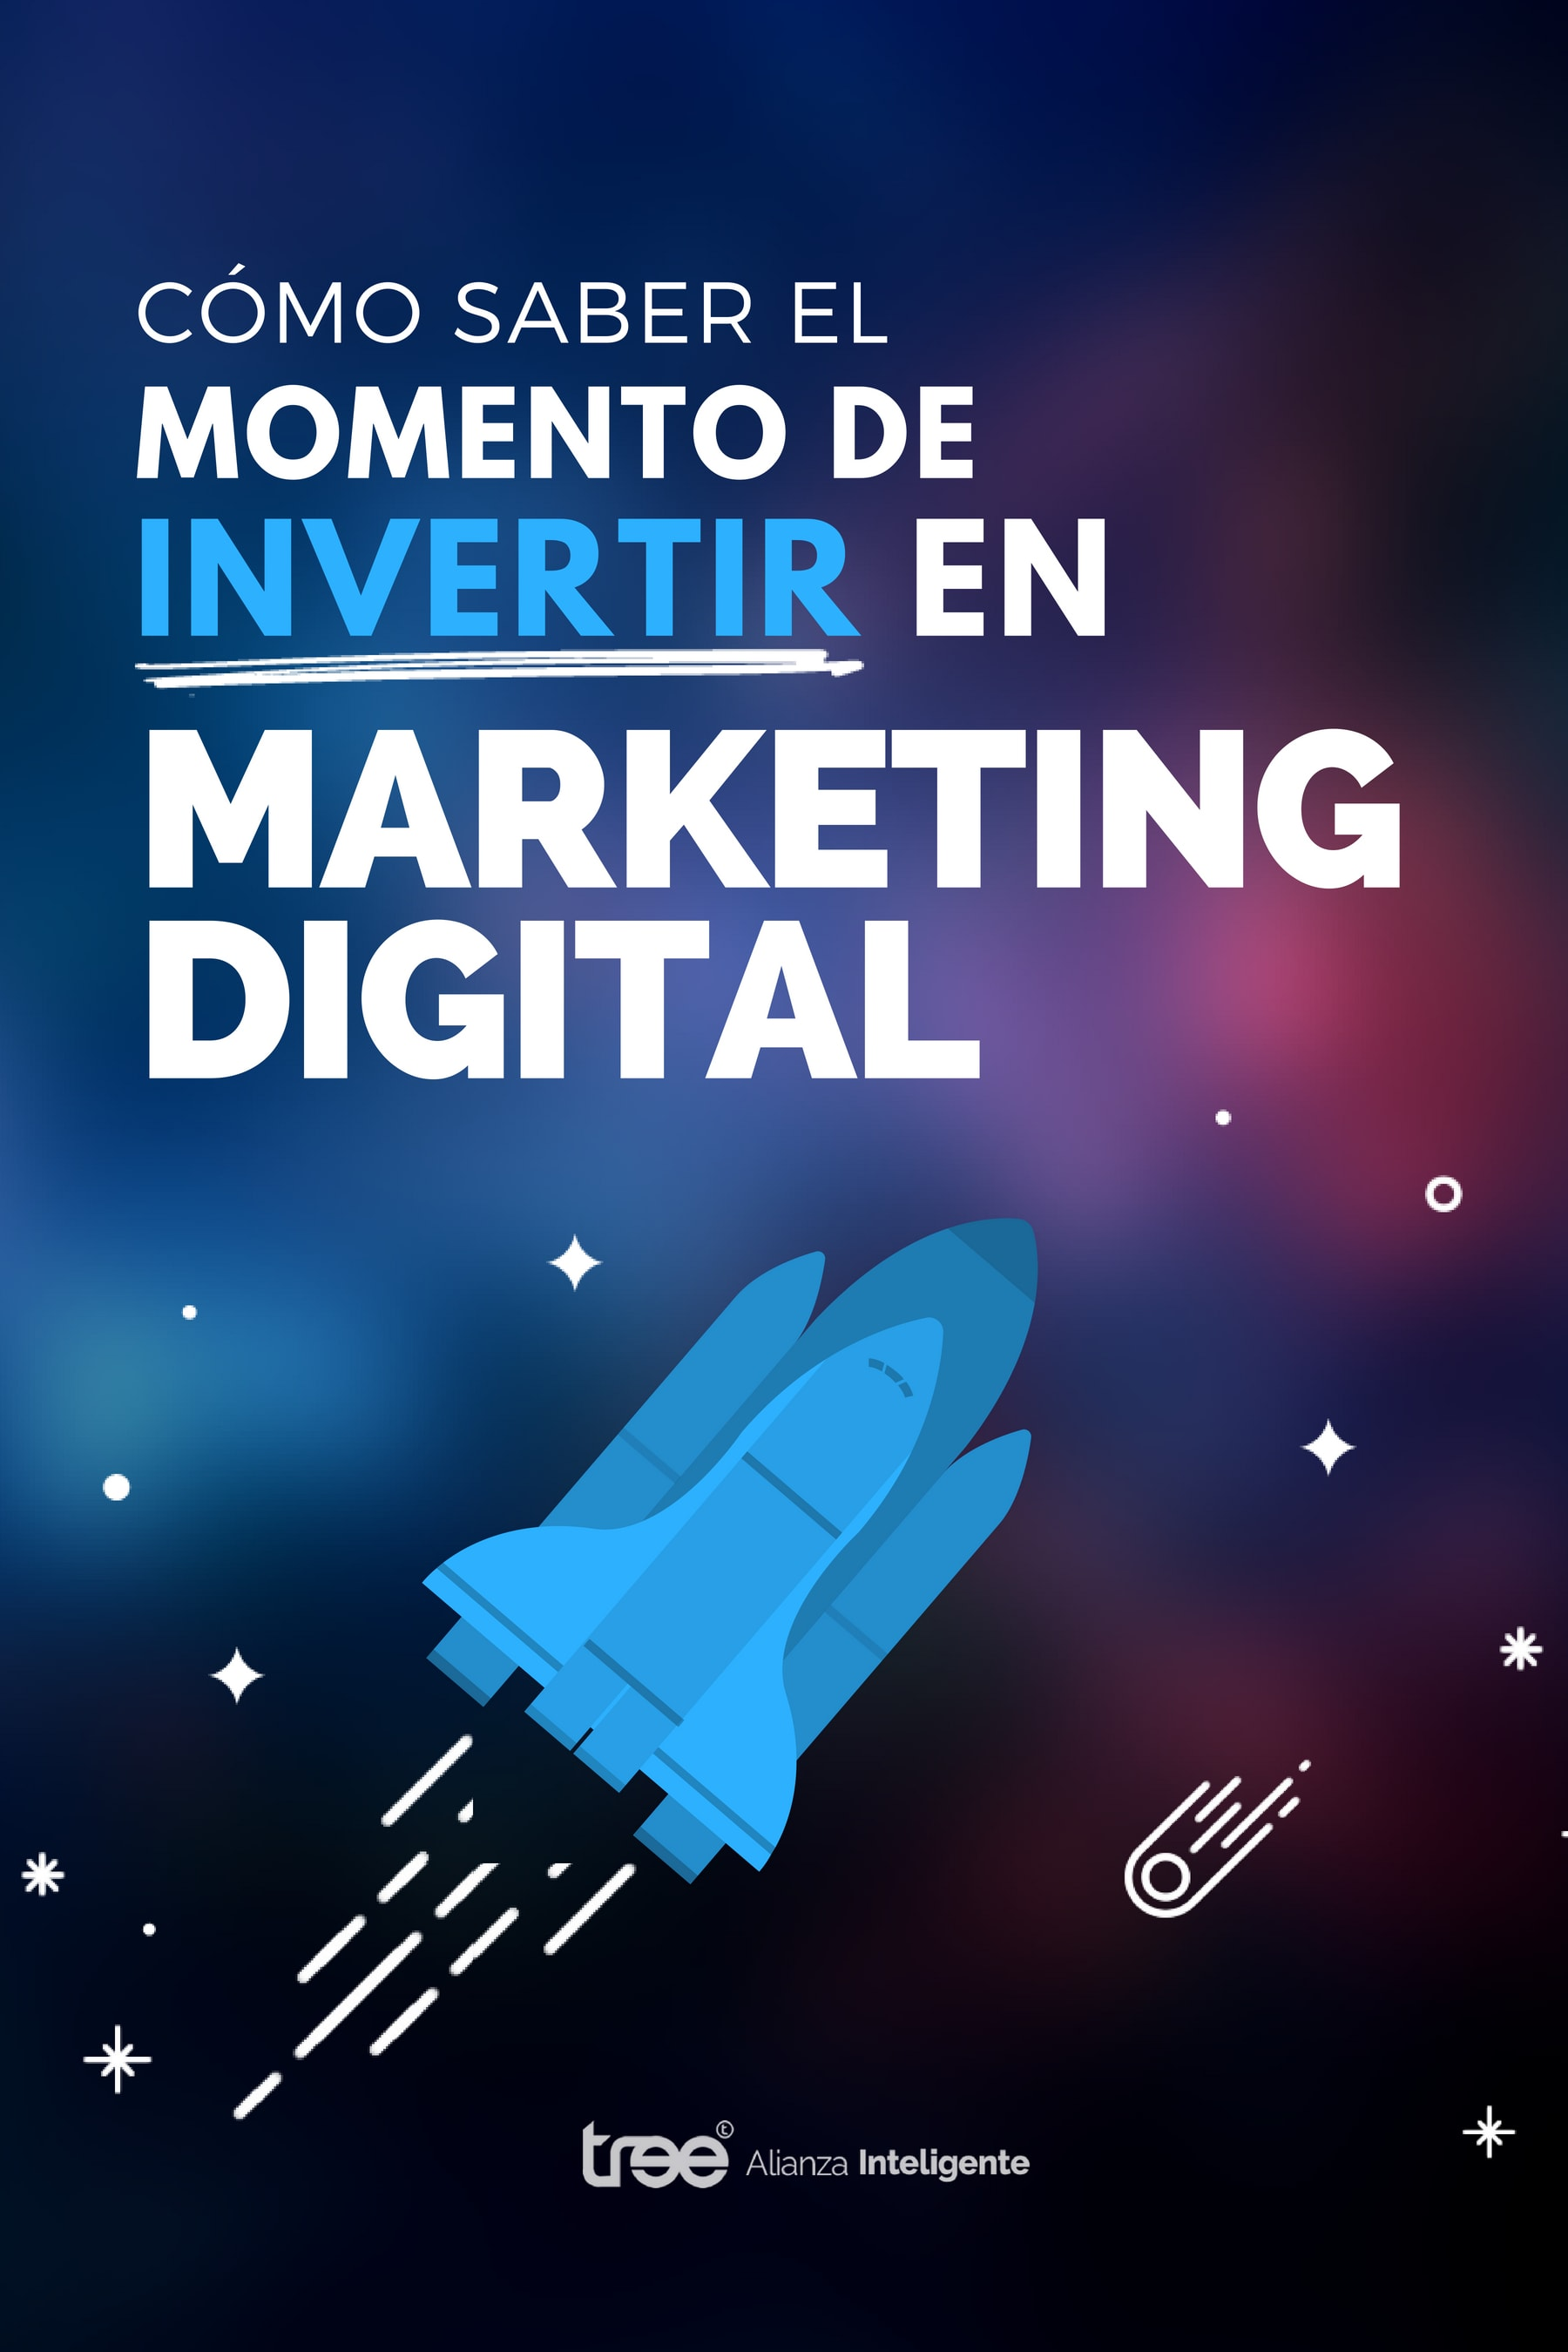 Gratuito - Ebook: cómo saber el momento de invertir en marketing digital